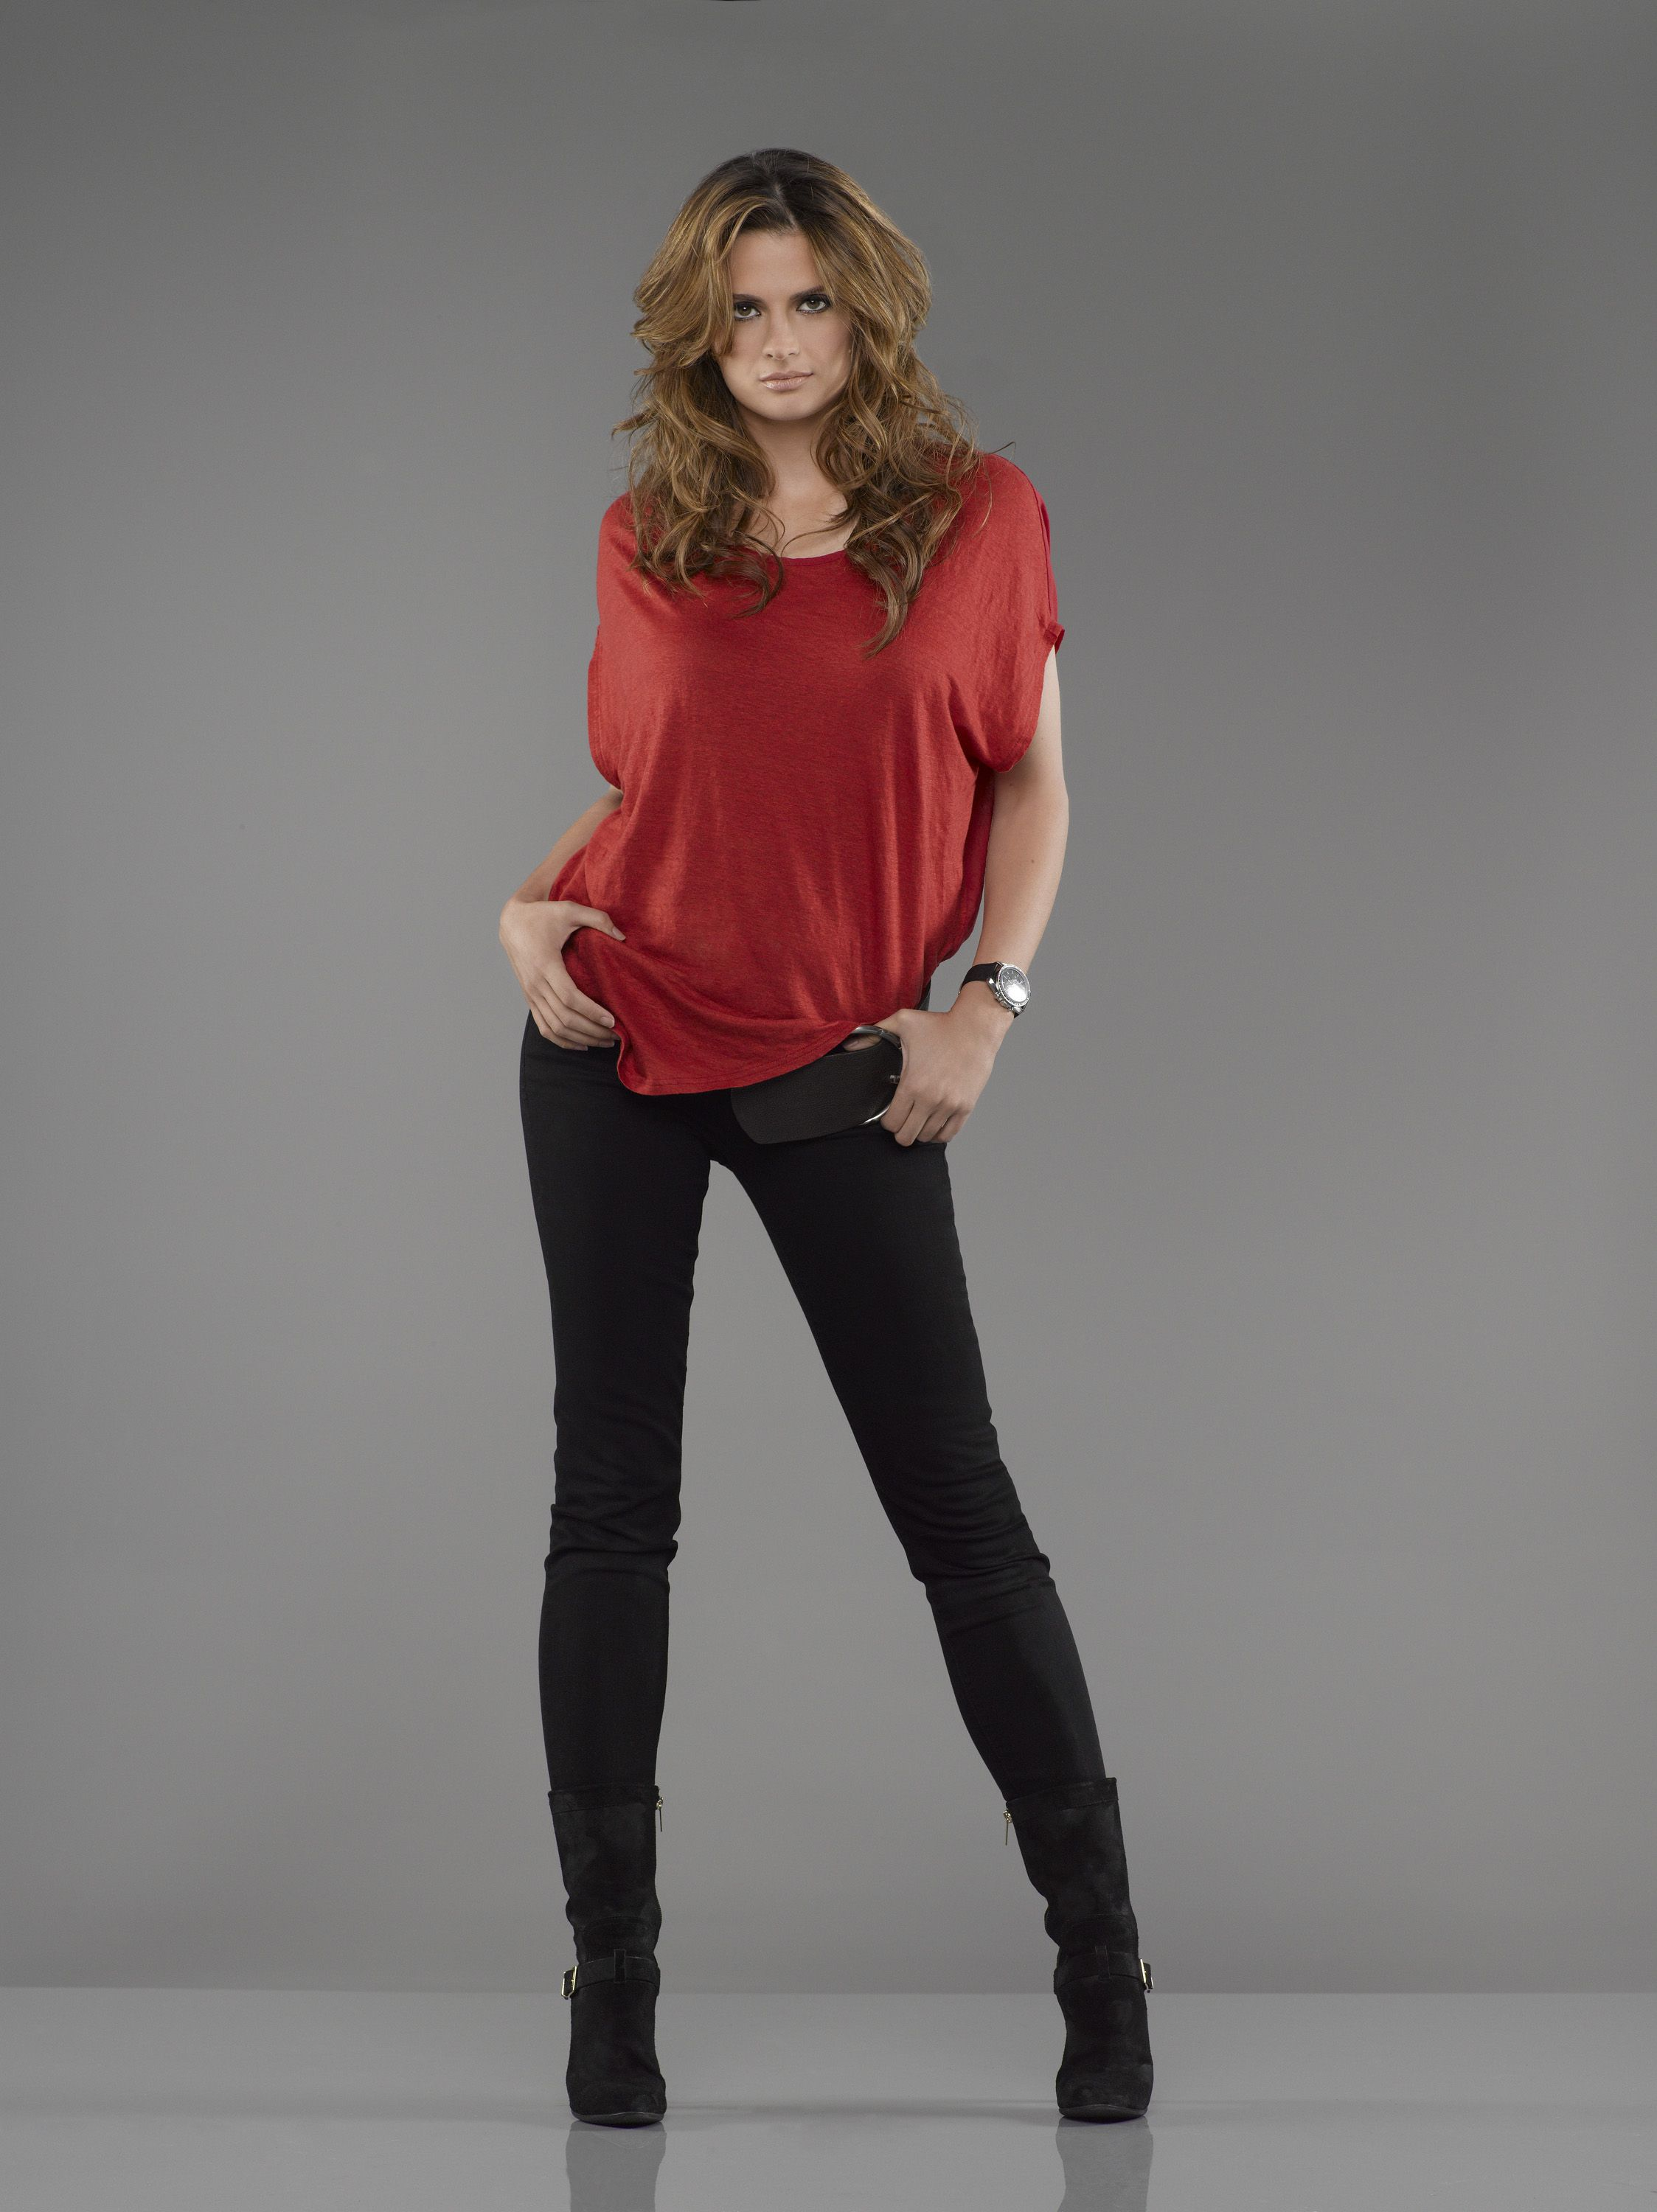 Stana Katic-I kind of want to use her as a model for my main character.